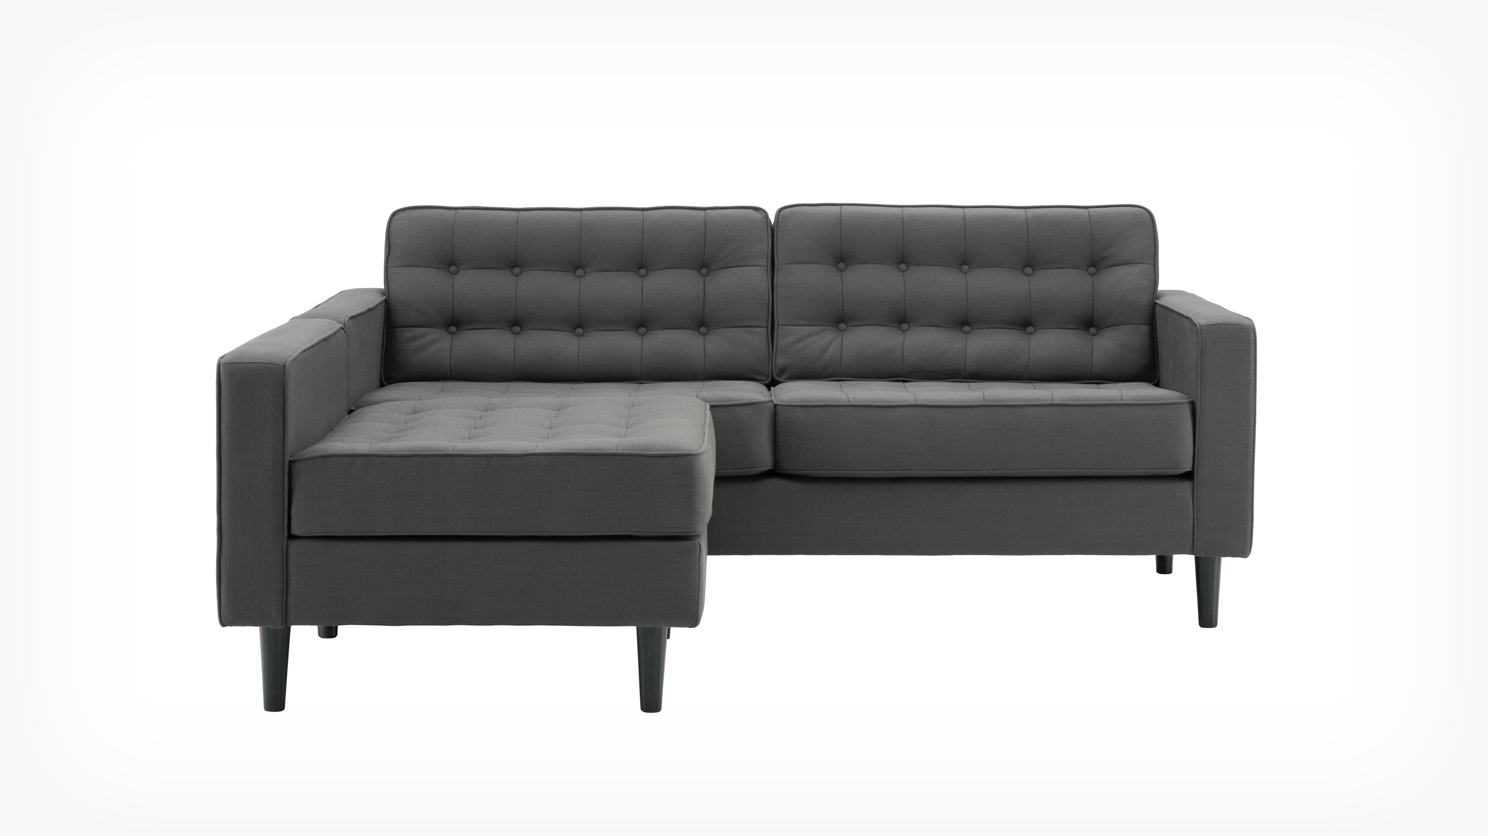 2Pc Burland Contemporary Chaise Sectional Sofas With Regard To Newest 2 Piece Sectional Sofa With Chaise Design – Homesfeed (View 22 of 25)